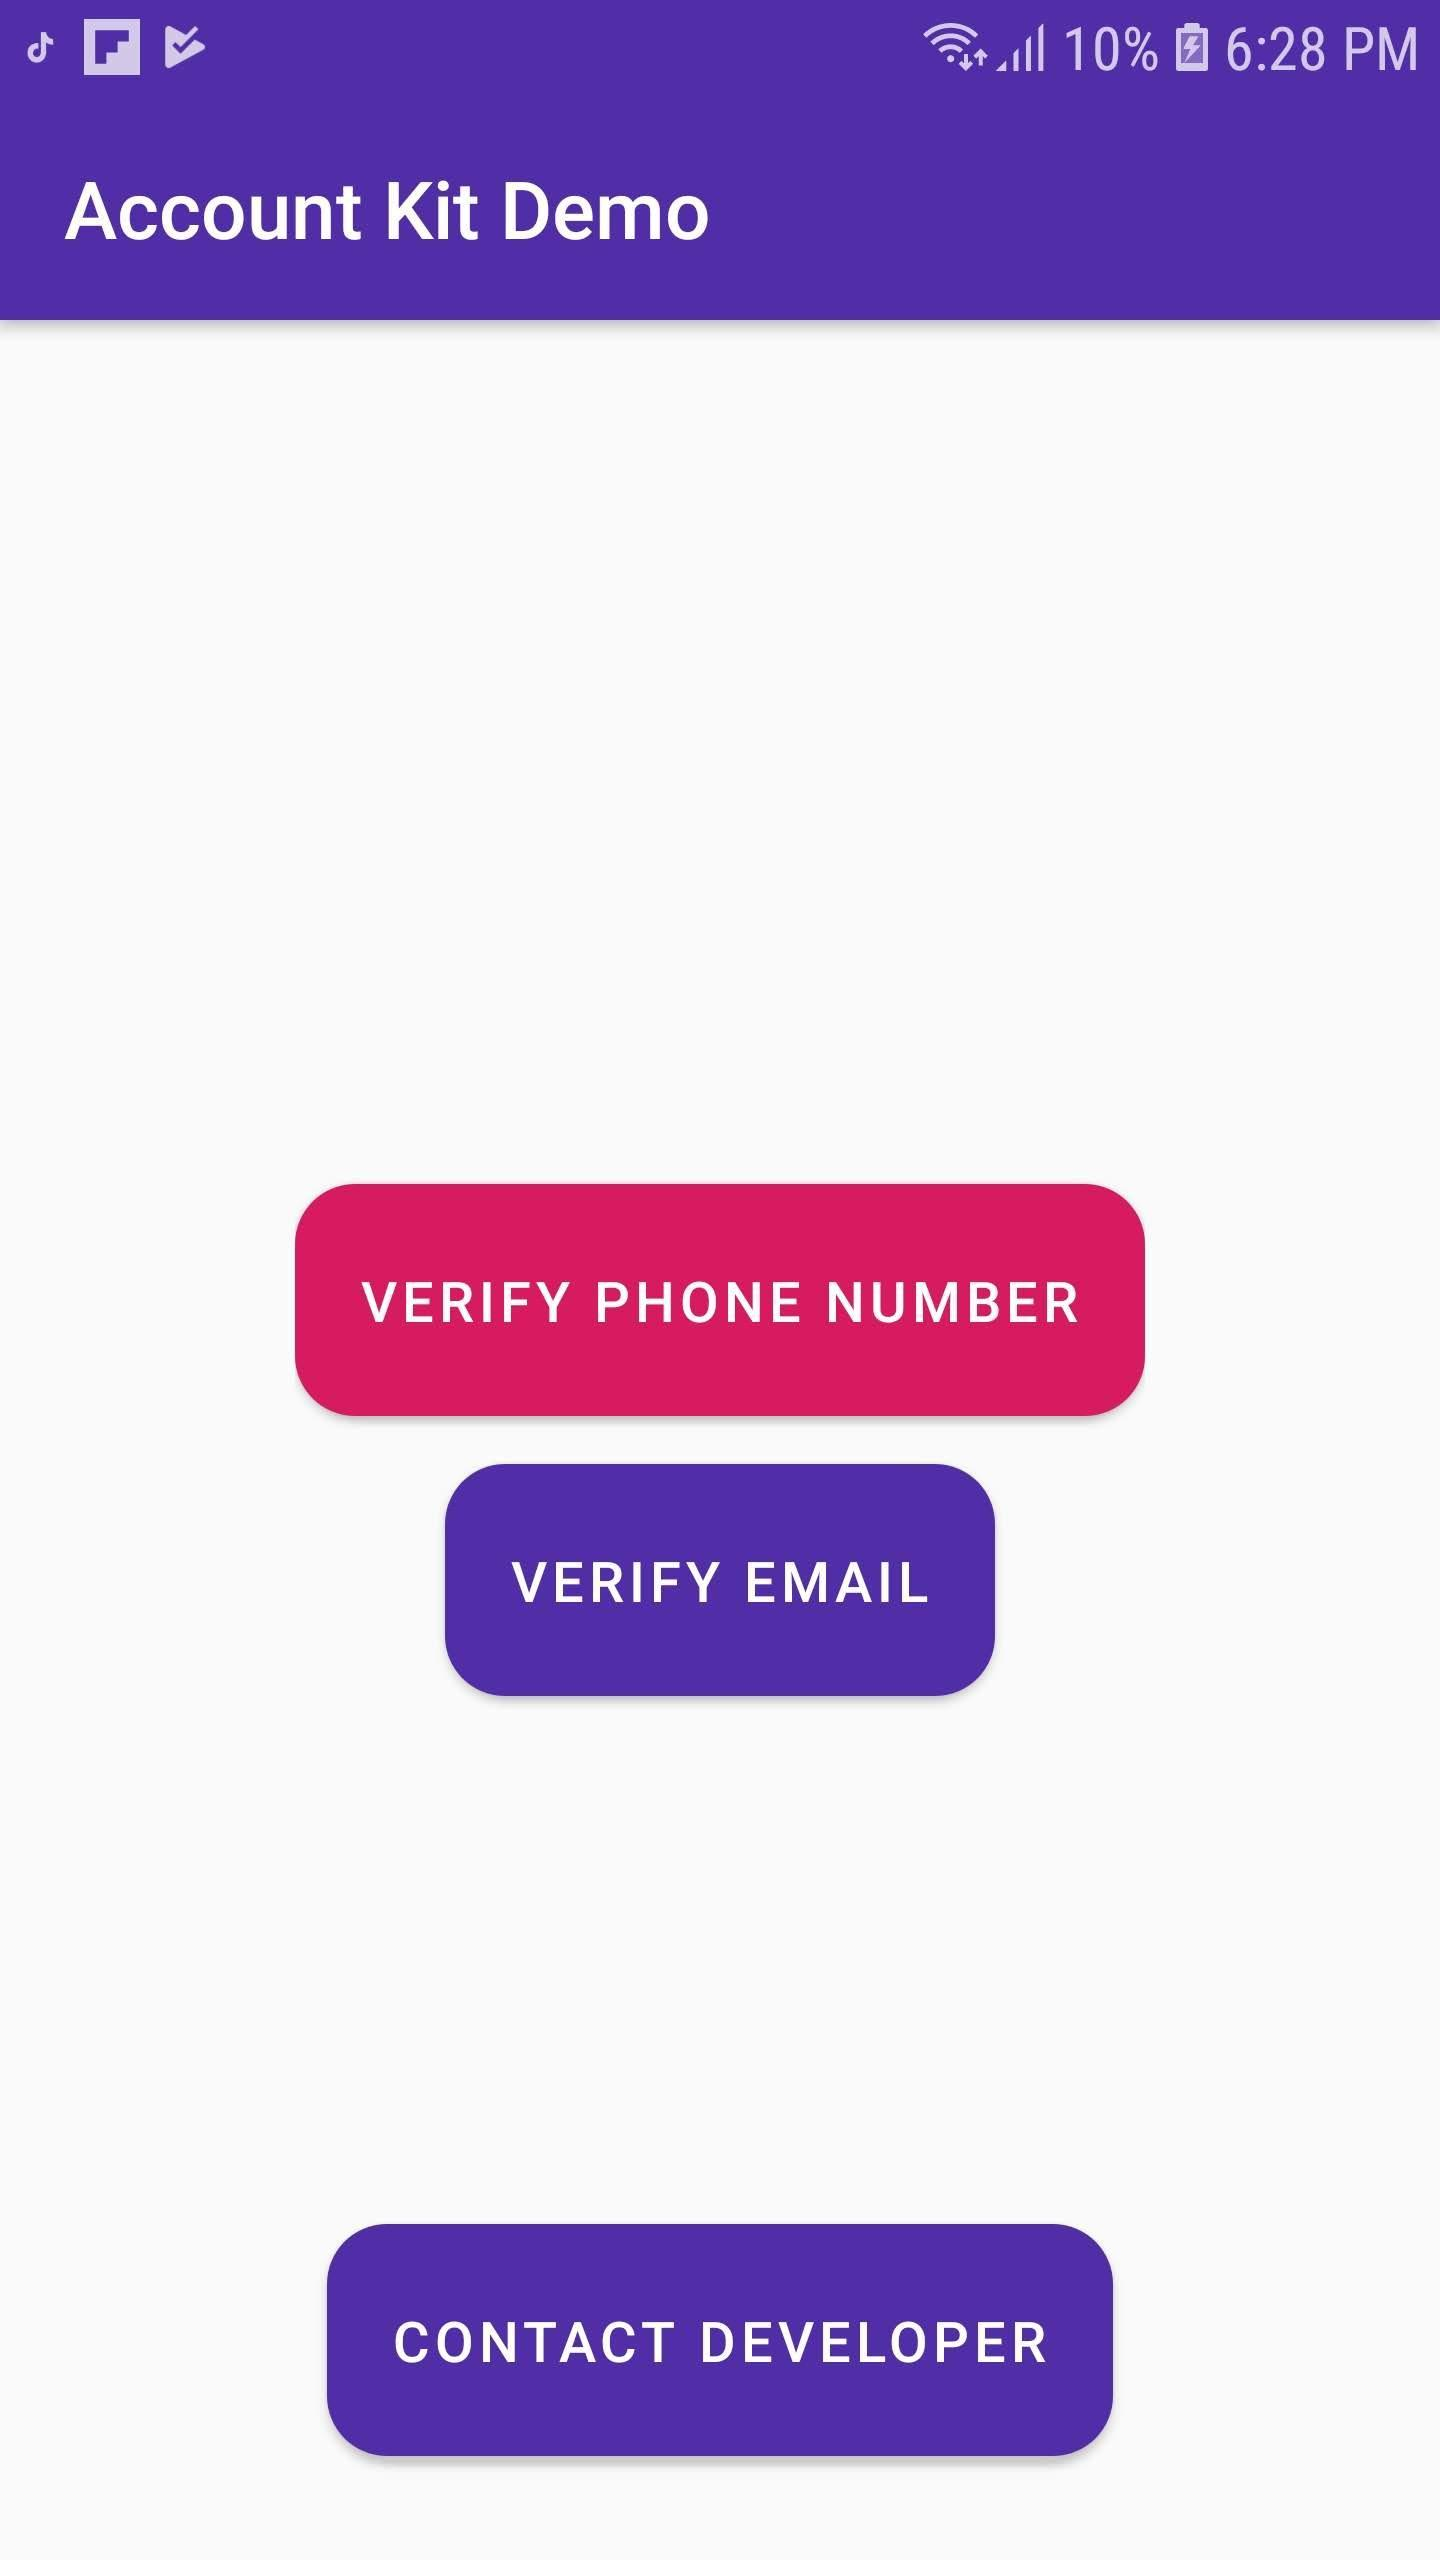 Account Kit Verify Phone / Email Demo for Android - APK Download